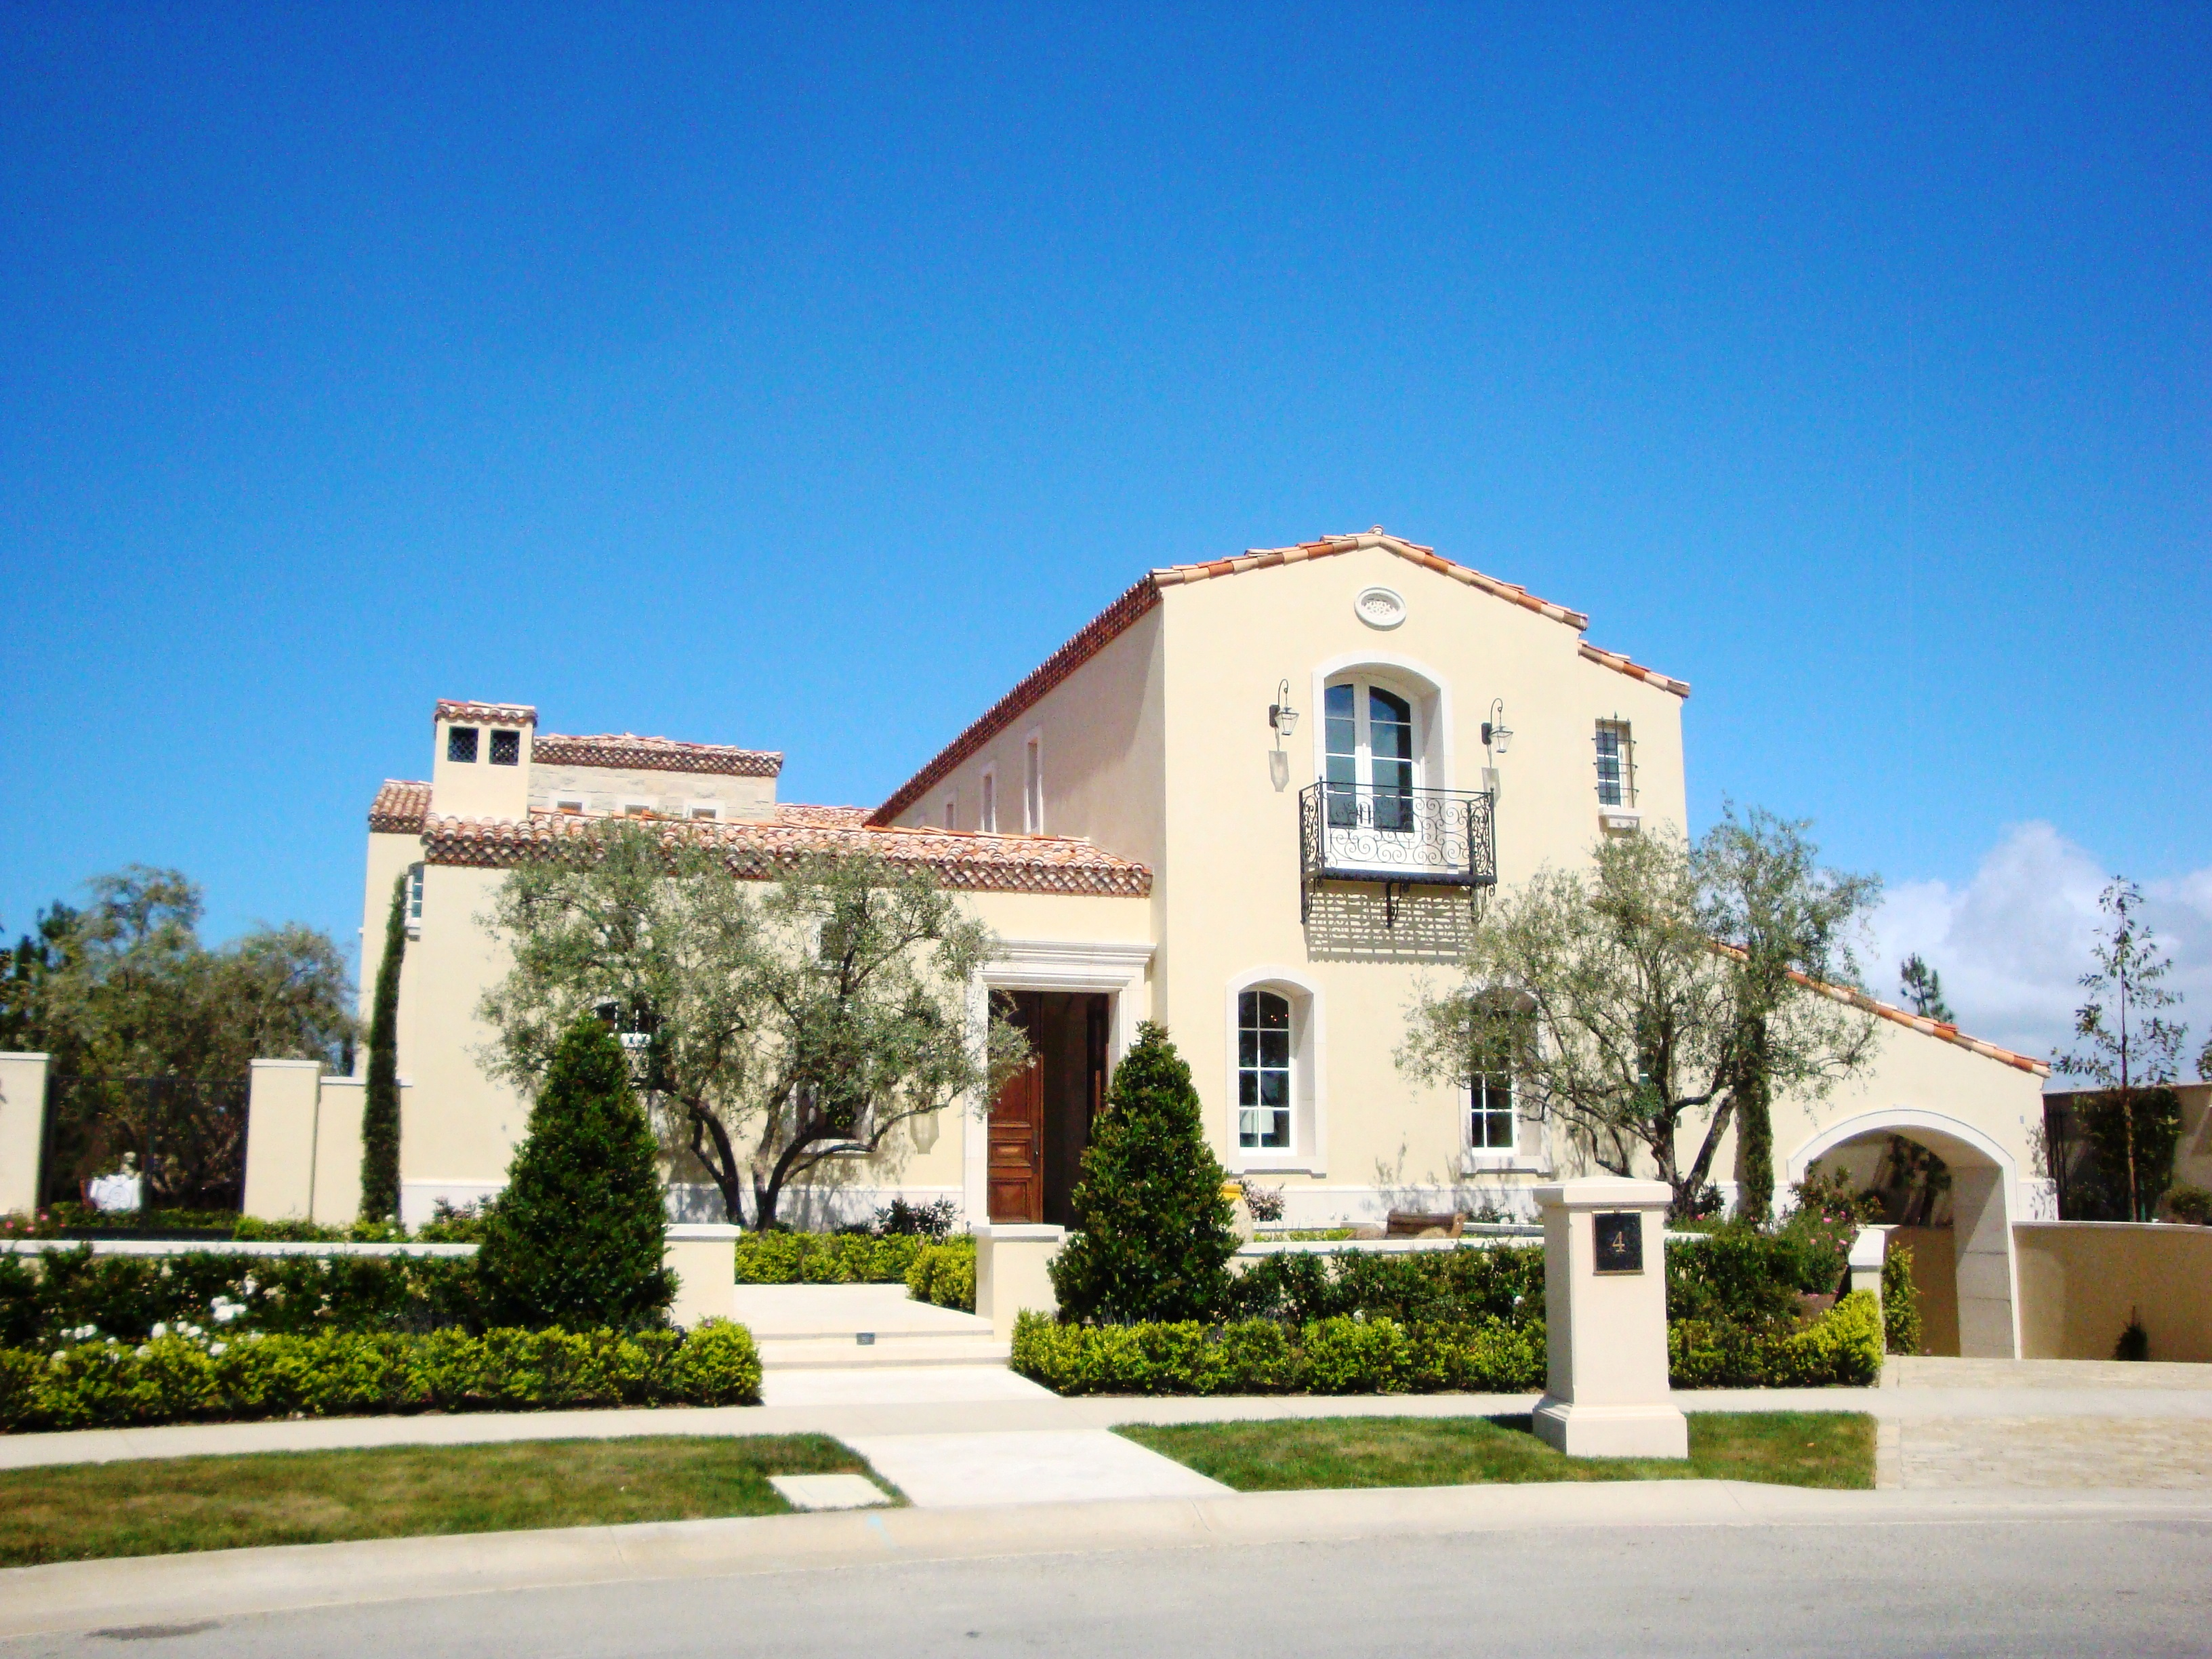 Crystal cove custom real estate homes condos for sale for Crystal ridge homes